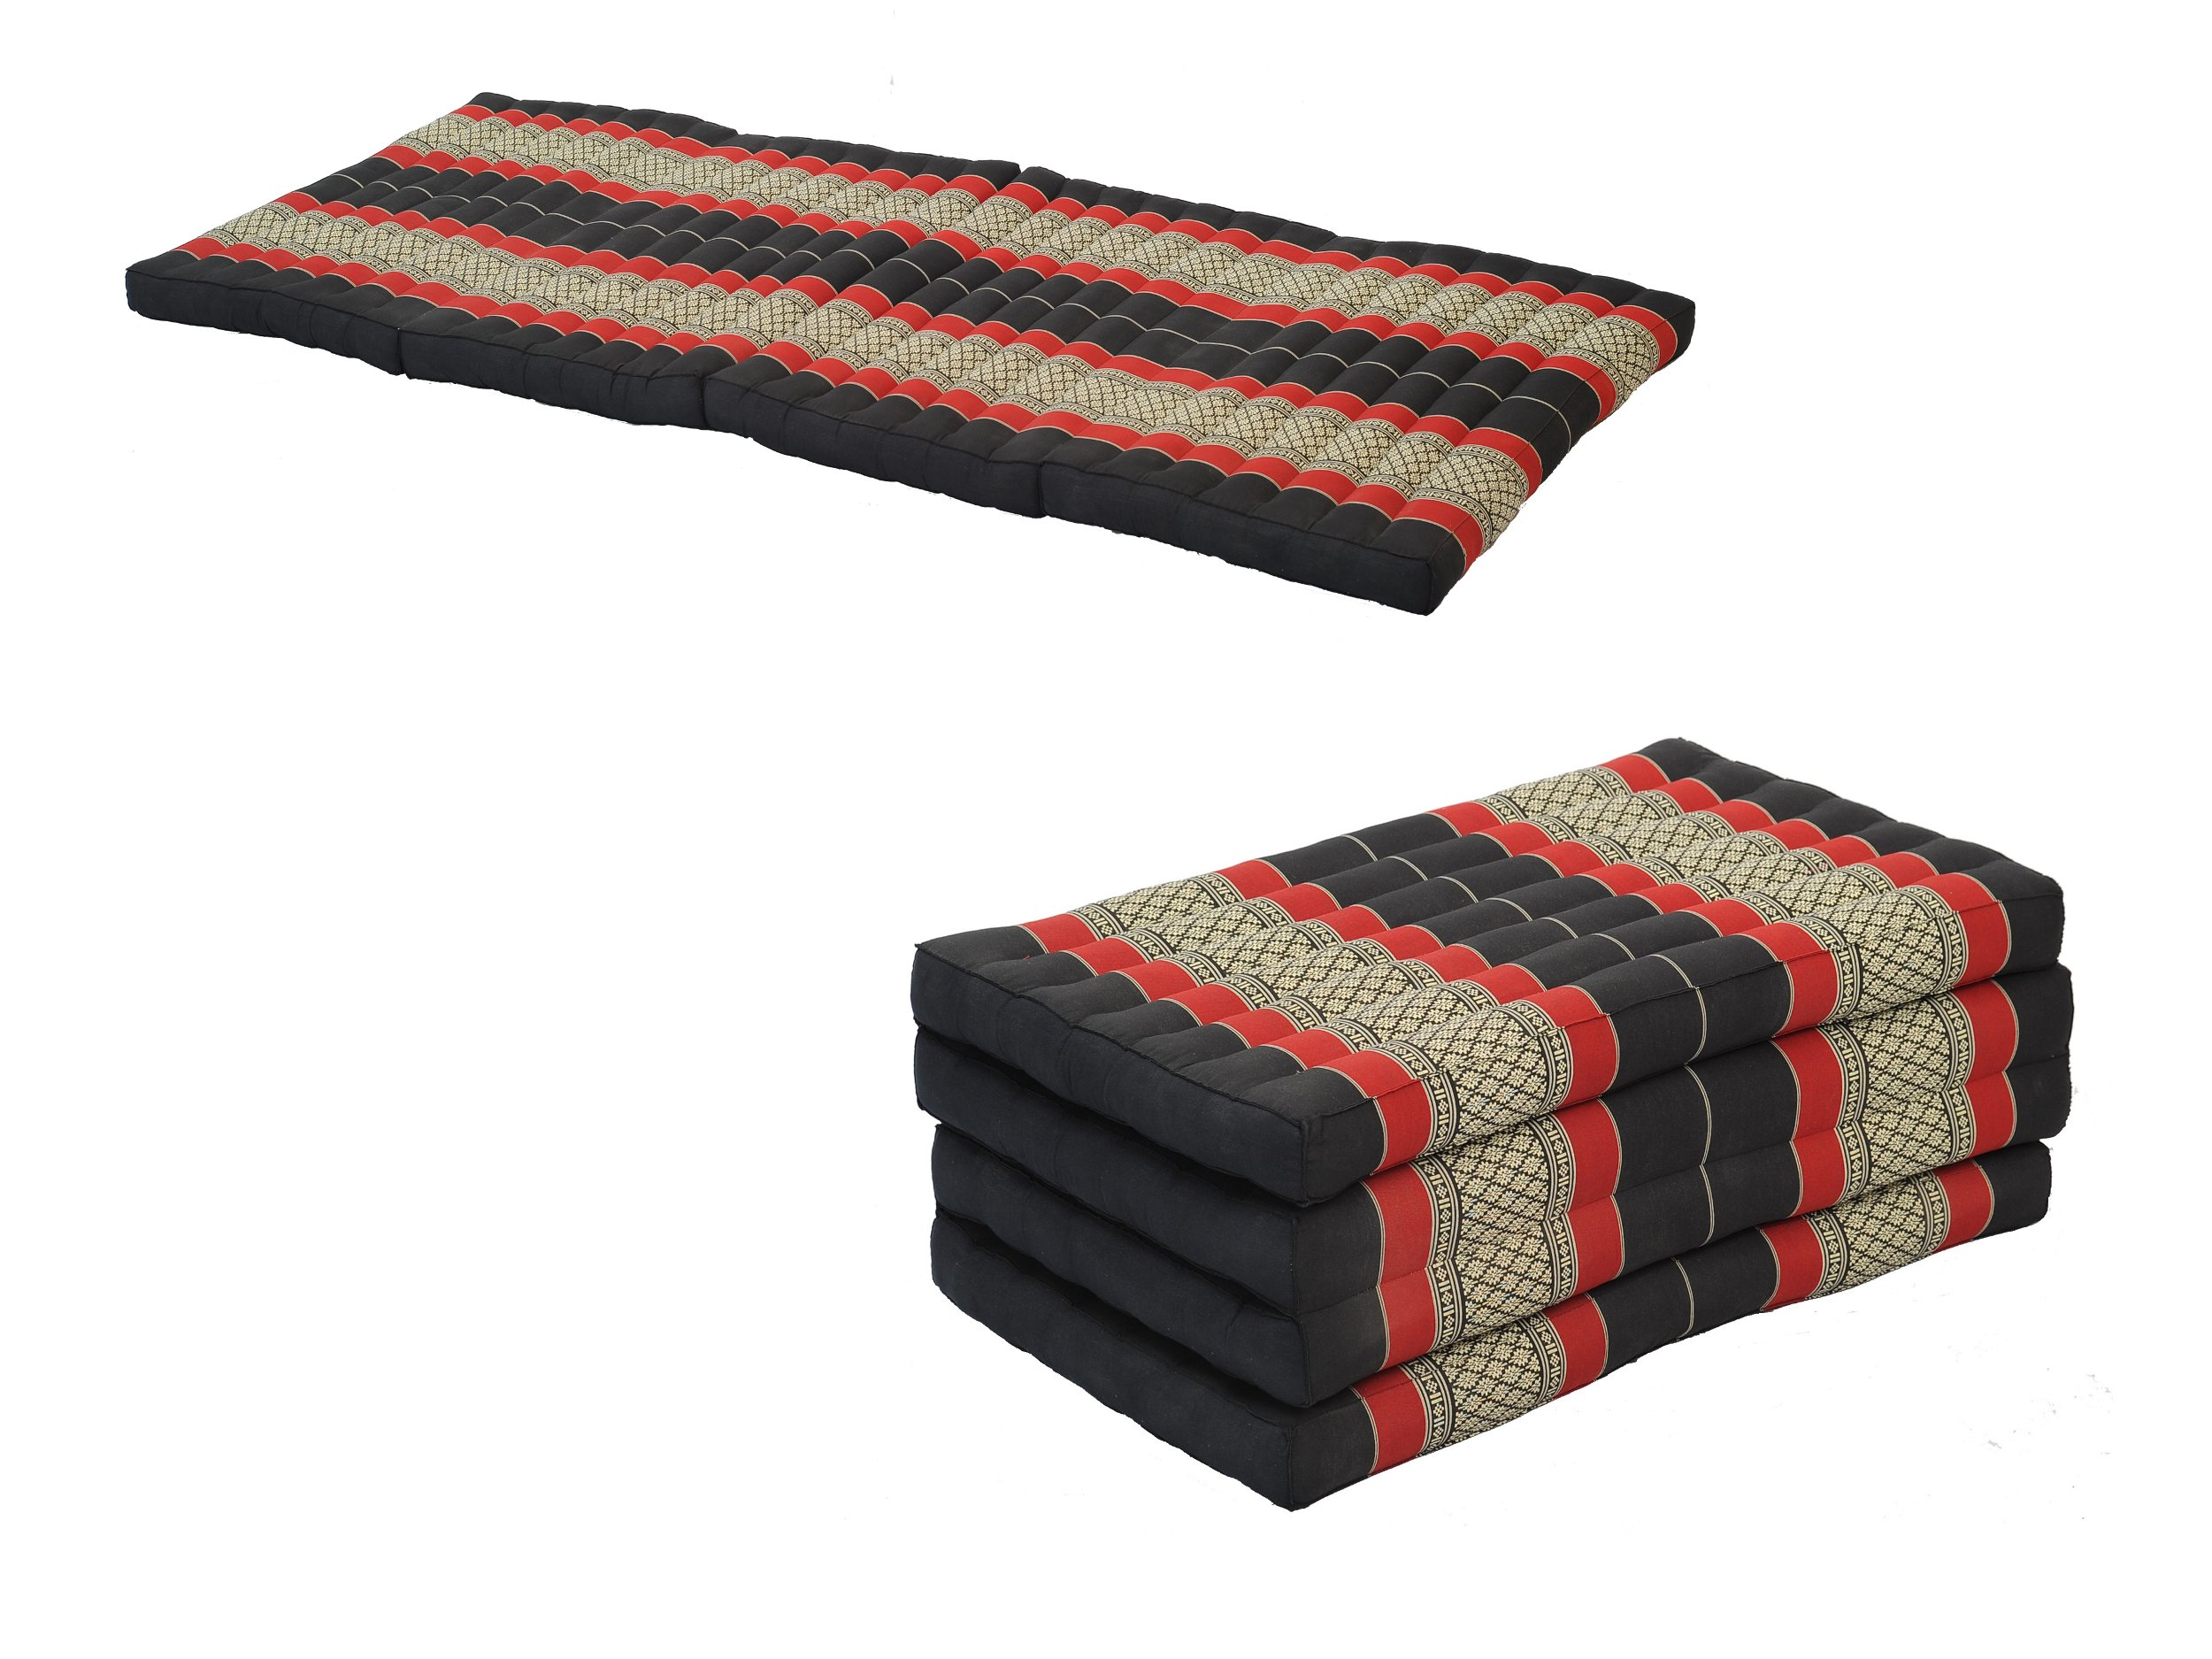 Pack: 2x 4-Fold Mattress (79x32inches), Traditional Thai Design BlackRed, (100% Kapok Filling)